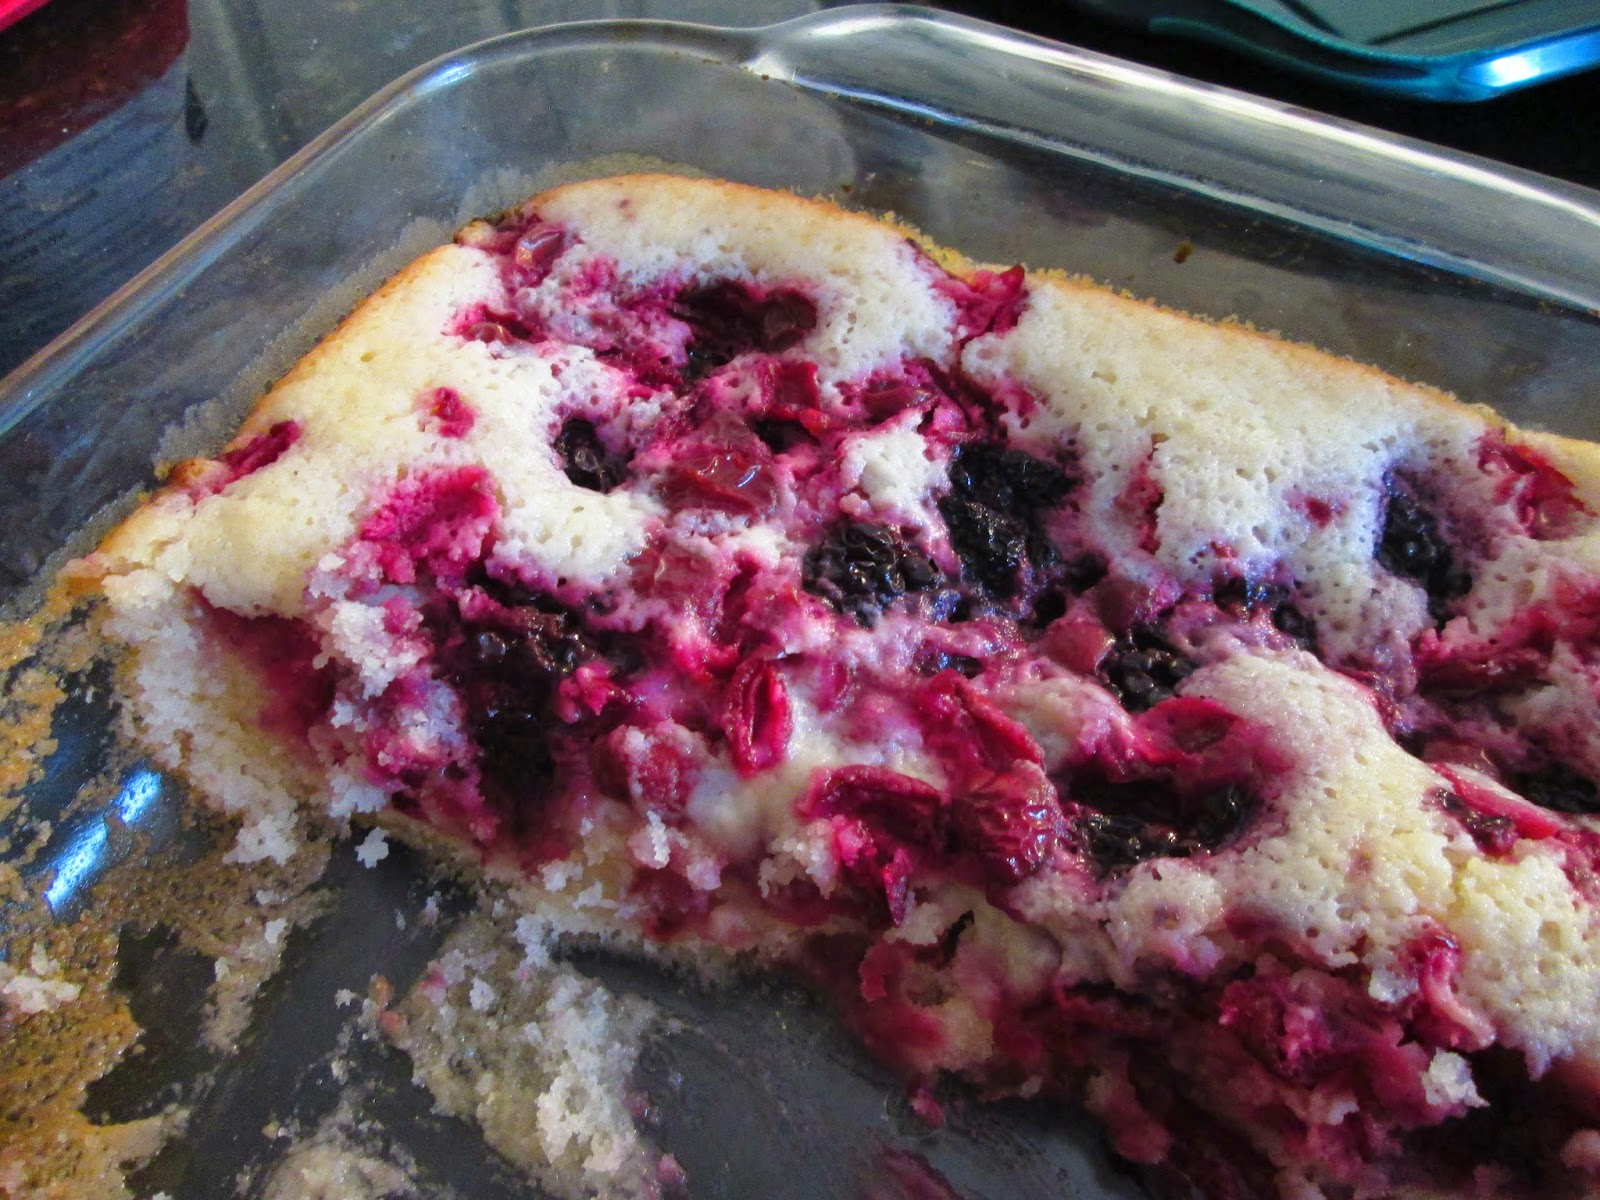 Cherry-Plum+and+Blackberry+Cobbler.JPG